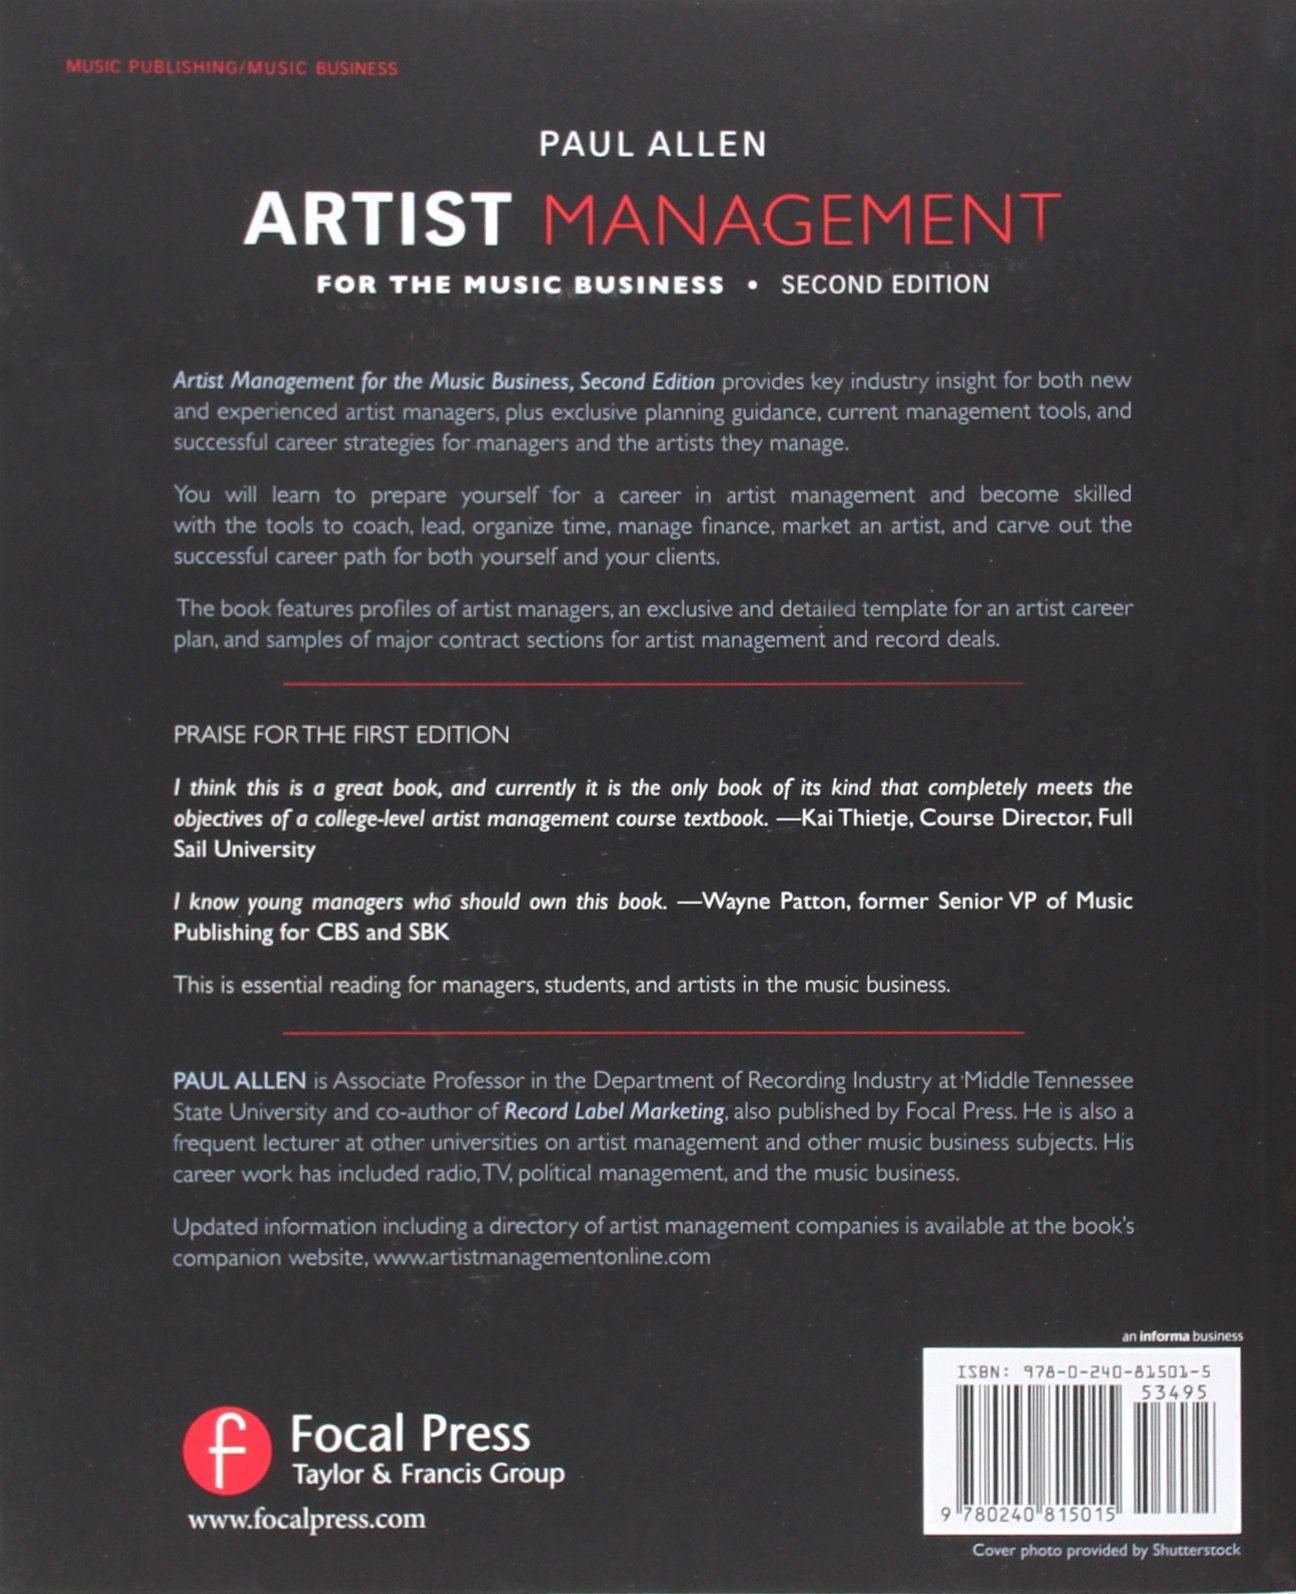 Artist management for the music business by paul allen · overdrive.